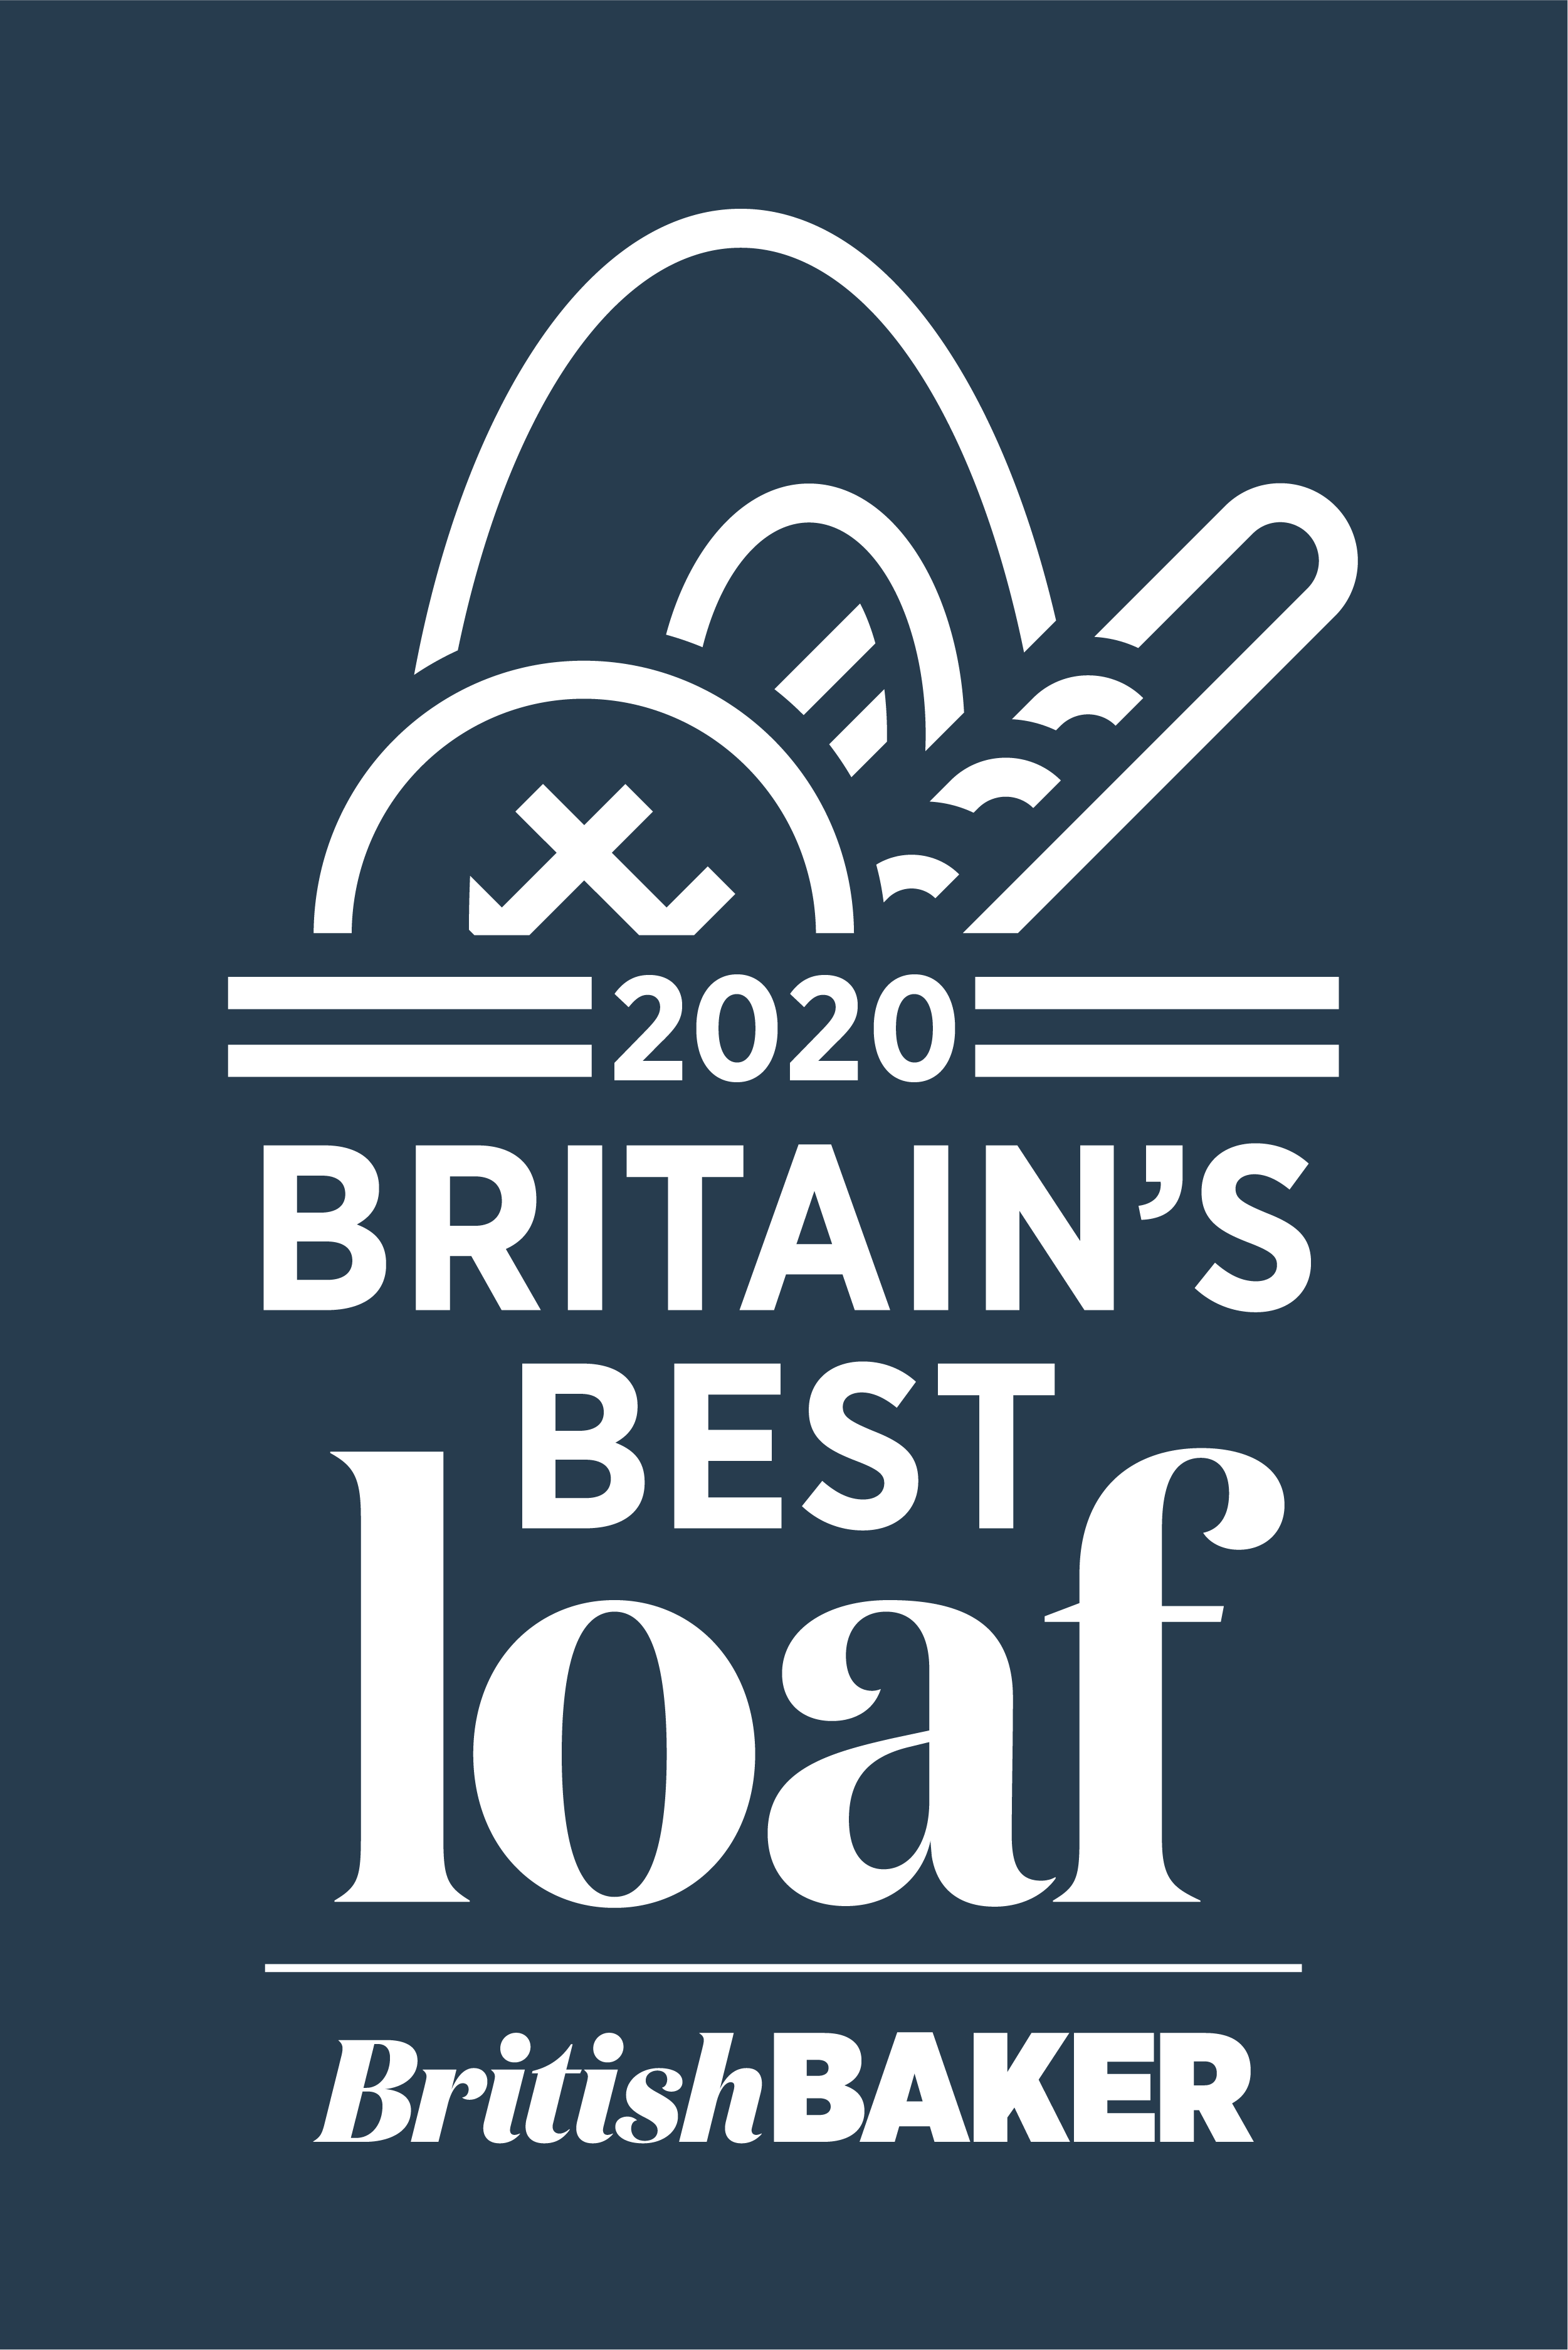 Britains Best Loaf